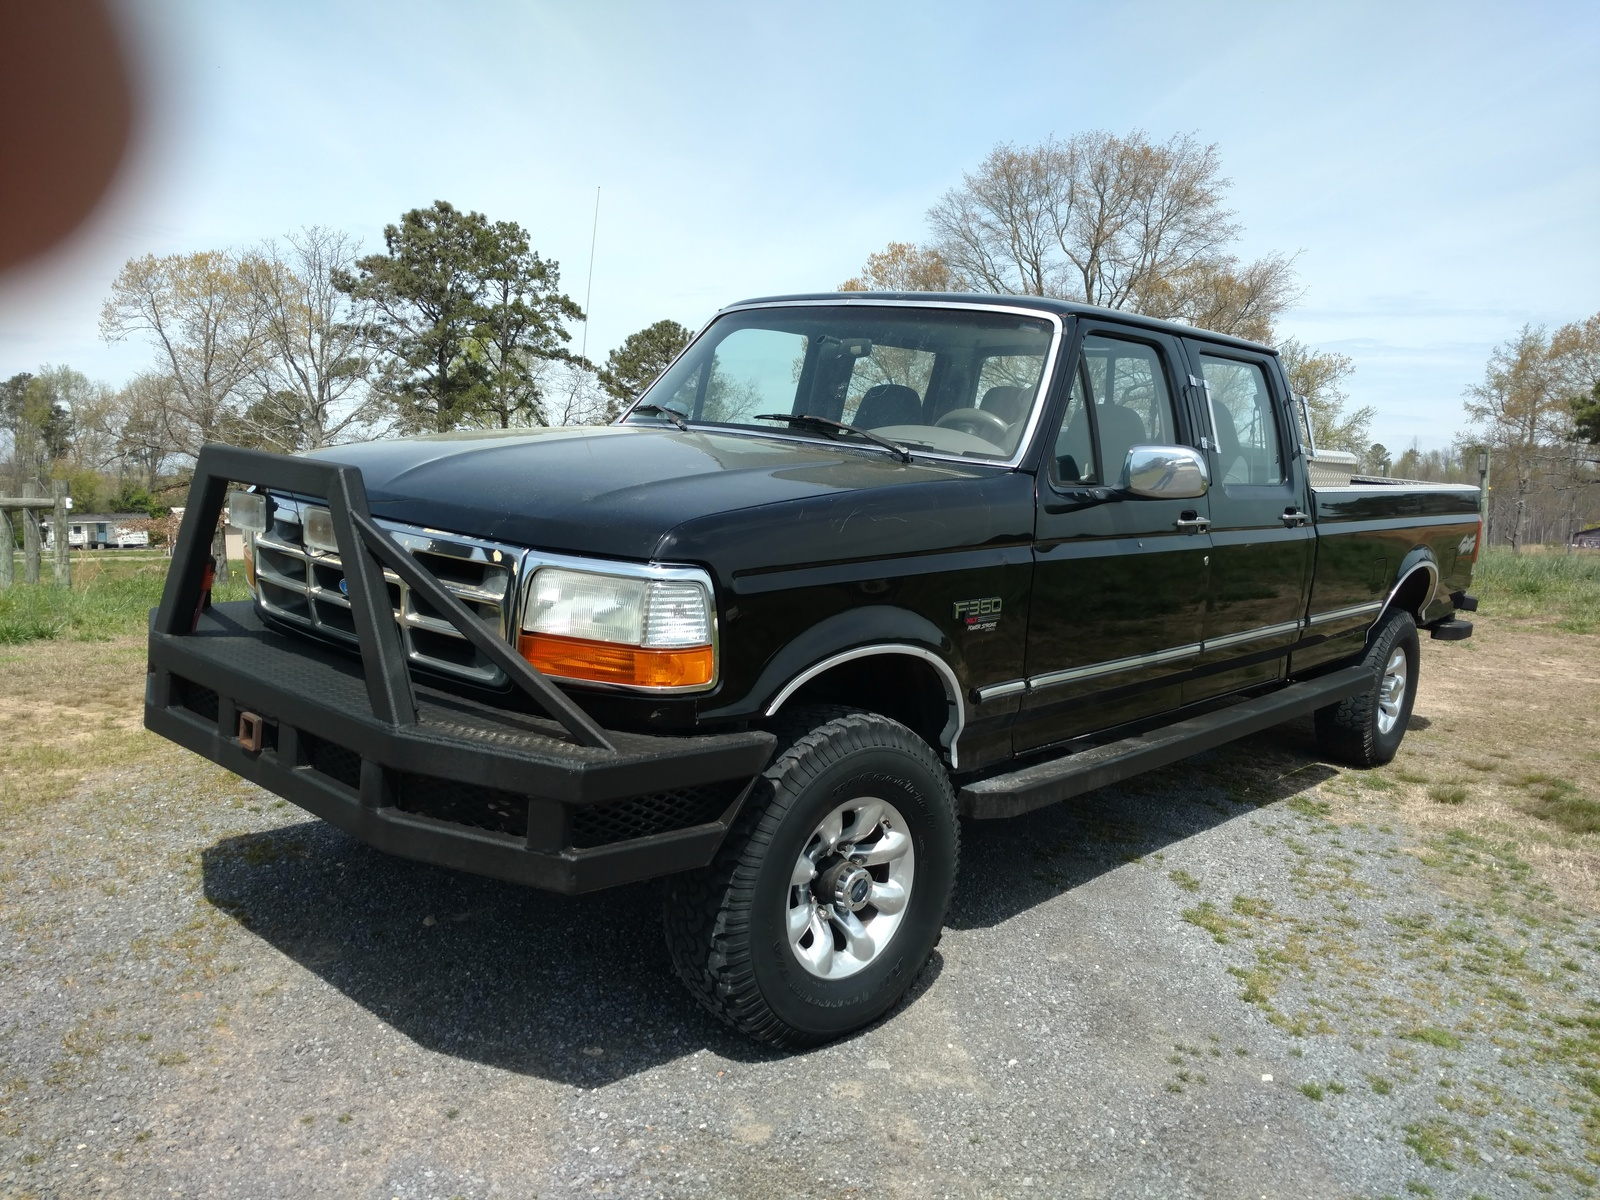 Ford F-350 Questions - Vin - CarGurus